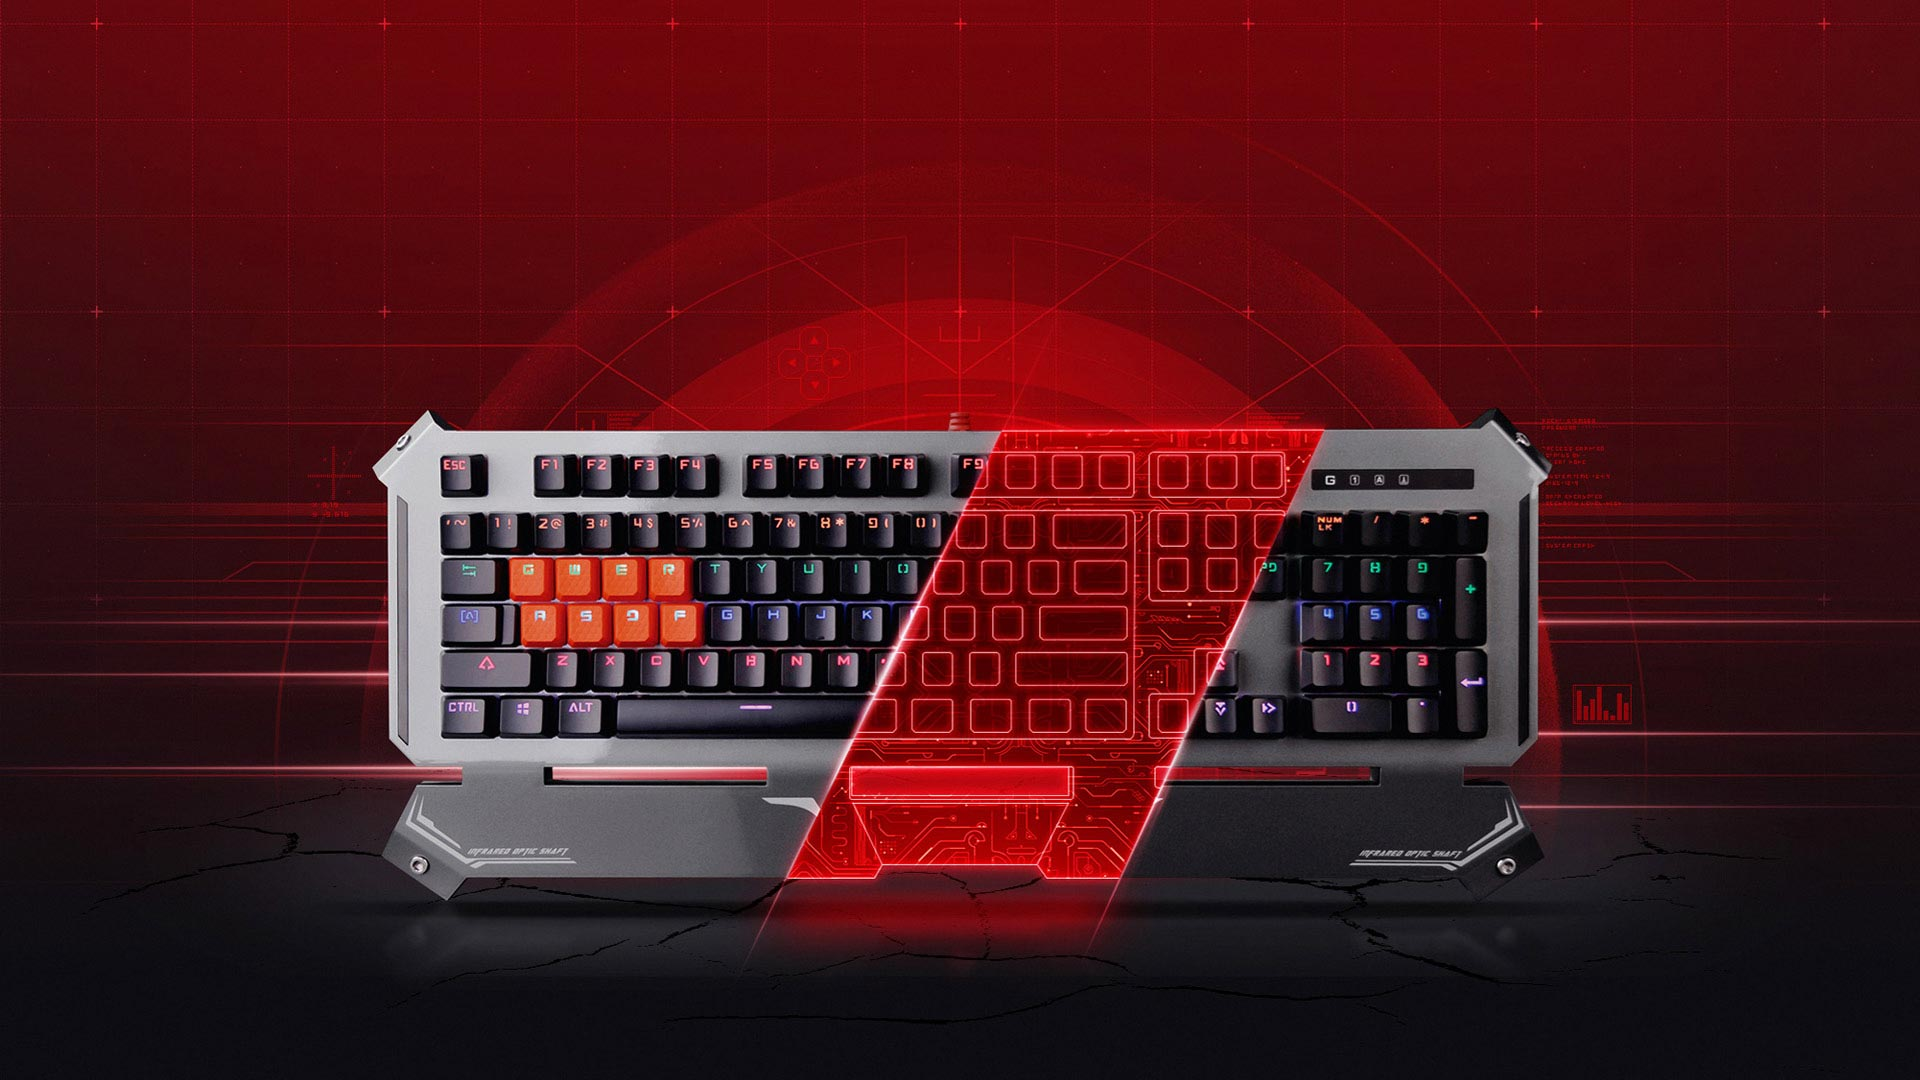 A4Tech B740A Bloody Gaming Keyboard price in Pakistan